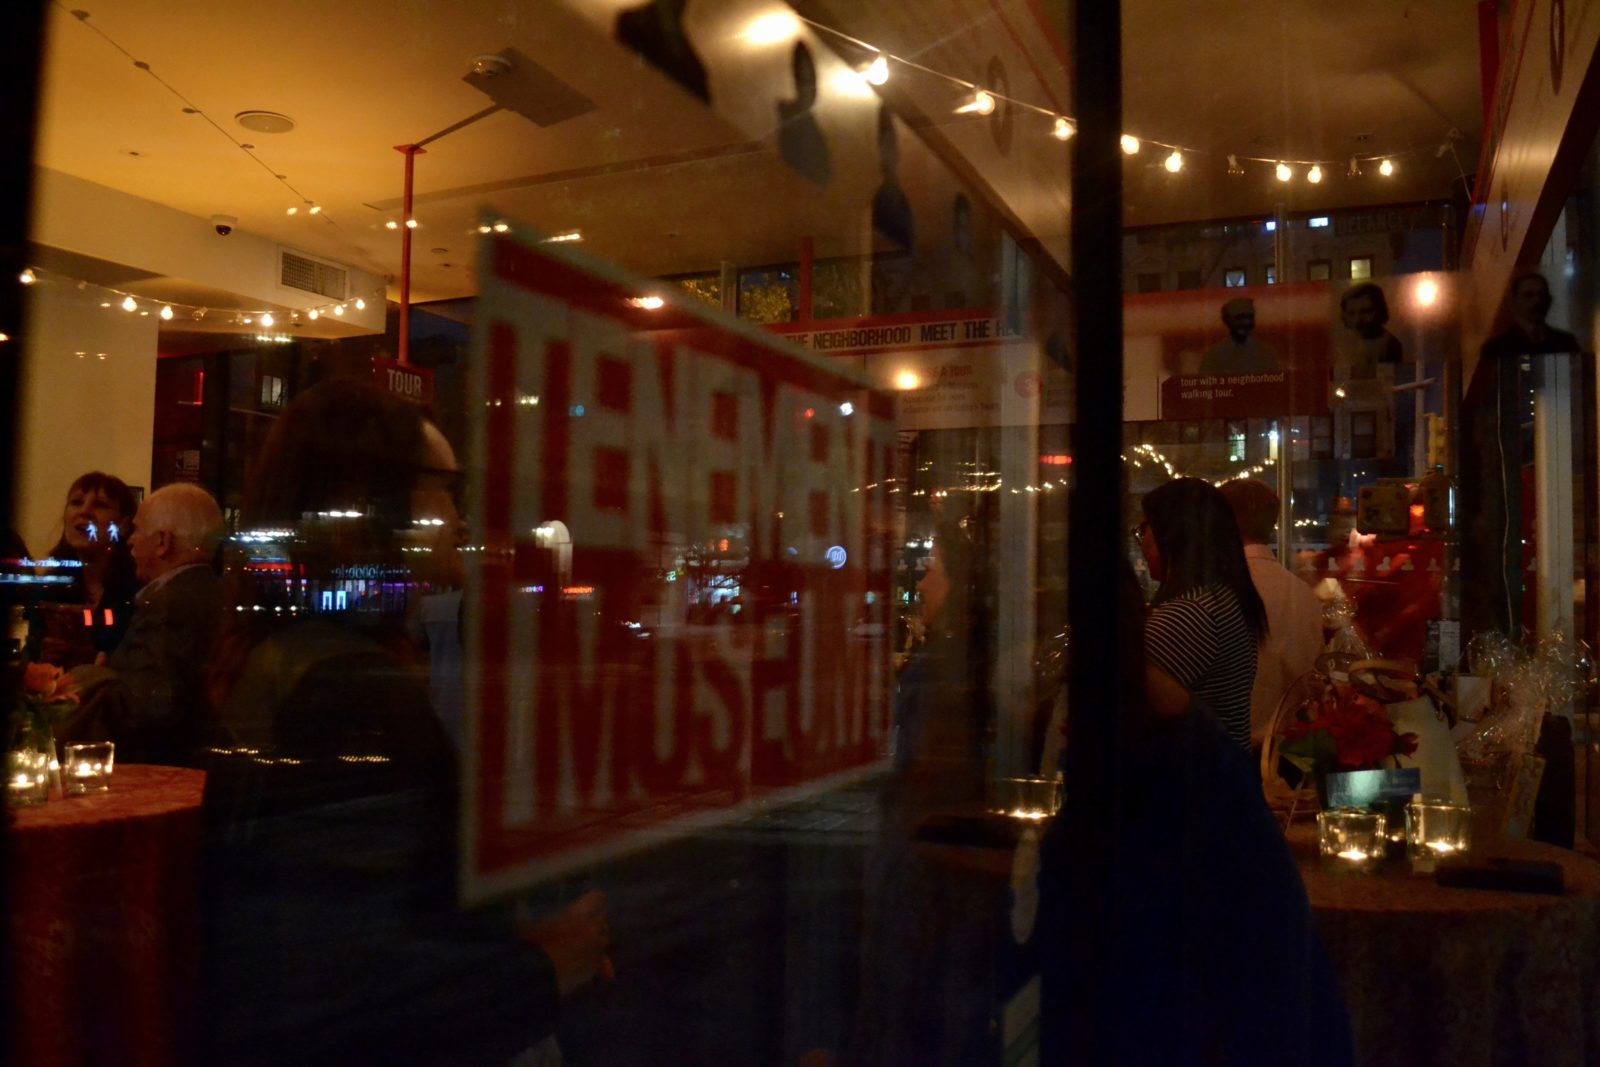 A view through the glass windows of a private event at 103 Orchard Street